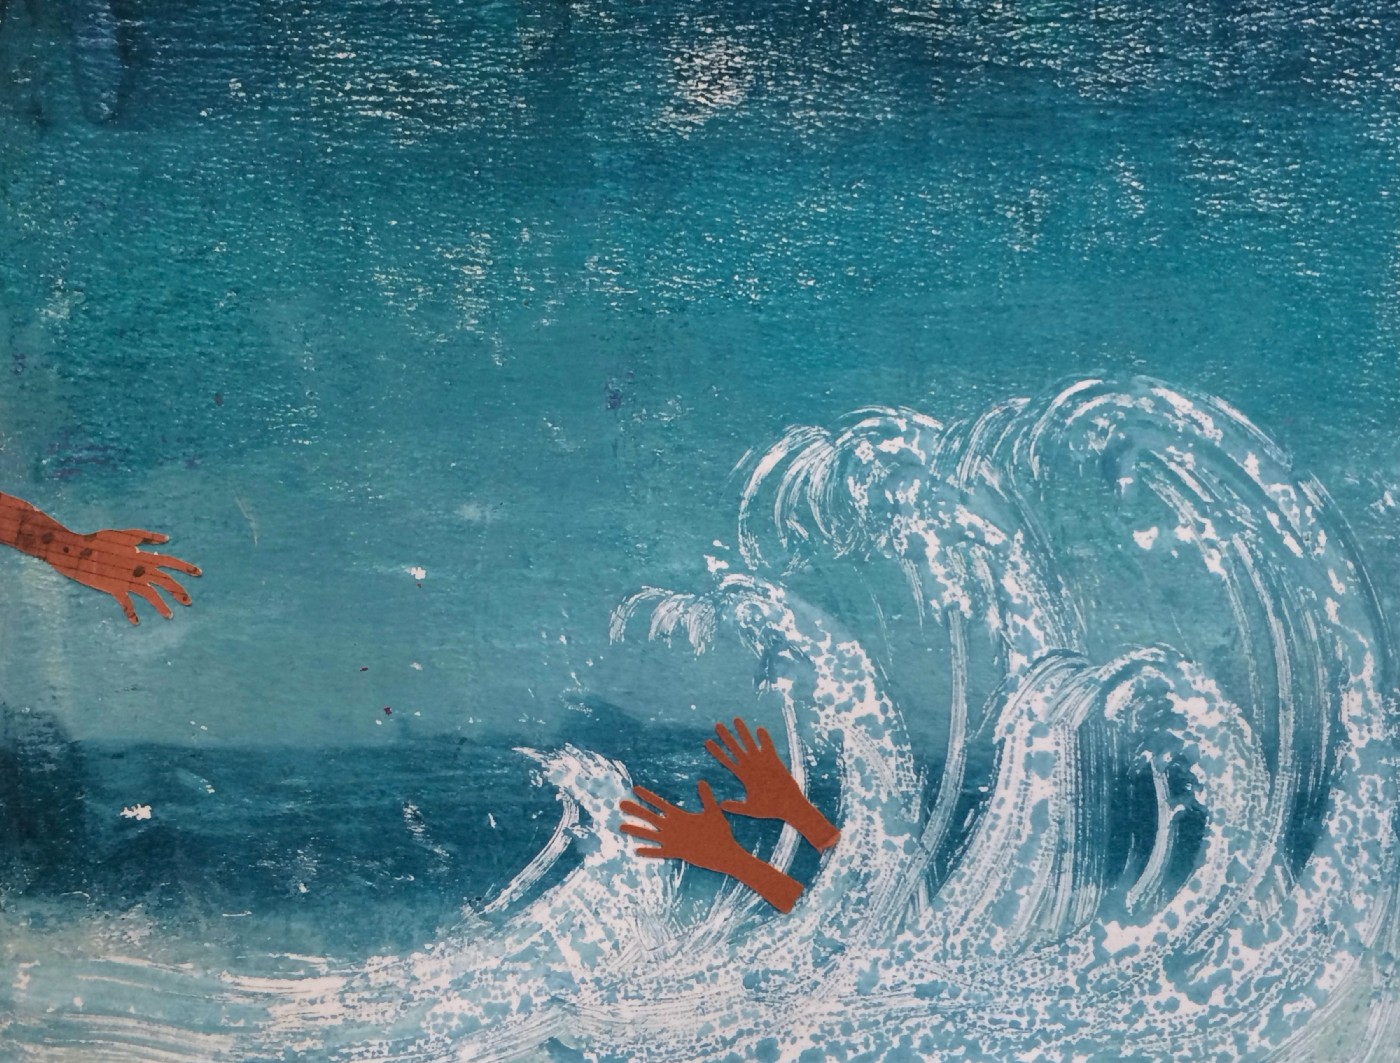 Mixed media art of a person reaching out from under a wave and another hand reaching out to save them